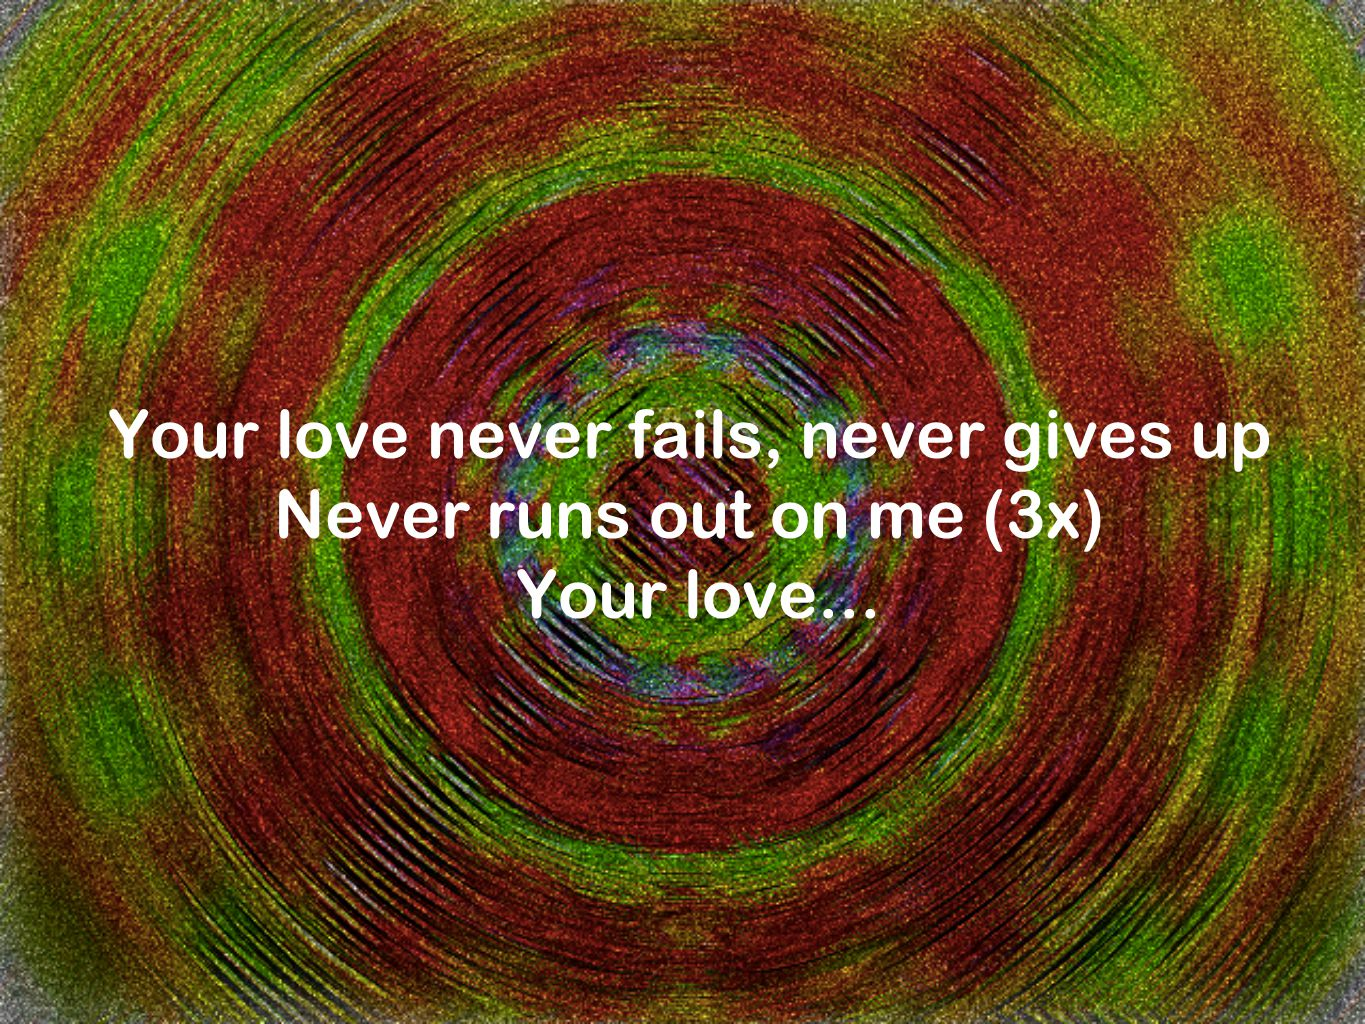 Your love never fails, never gives up Never runs out on me (3x) Your love...